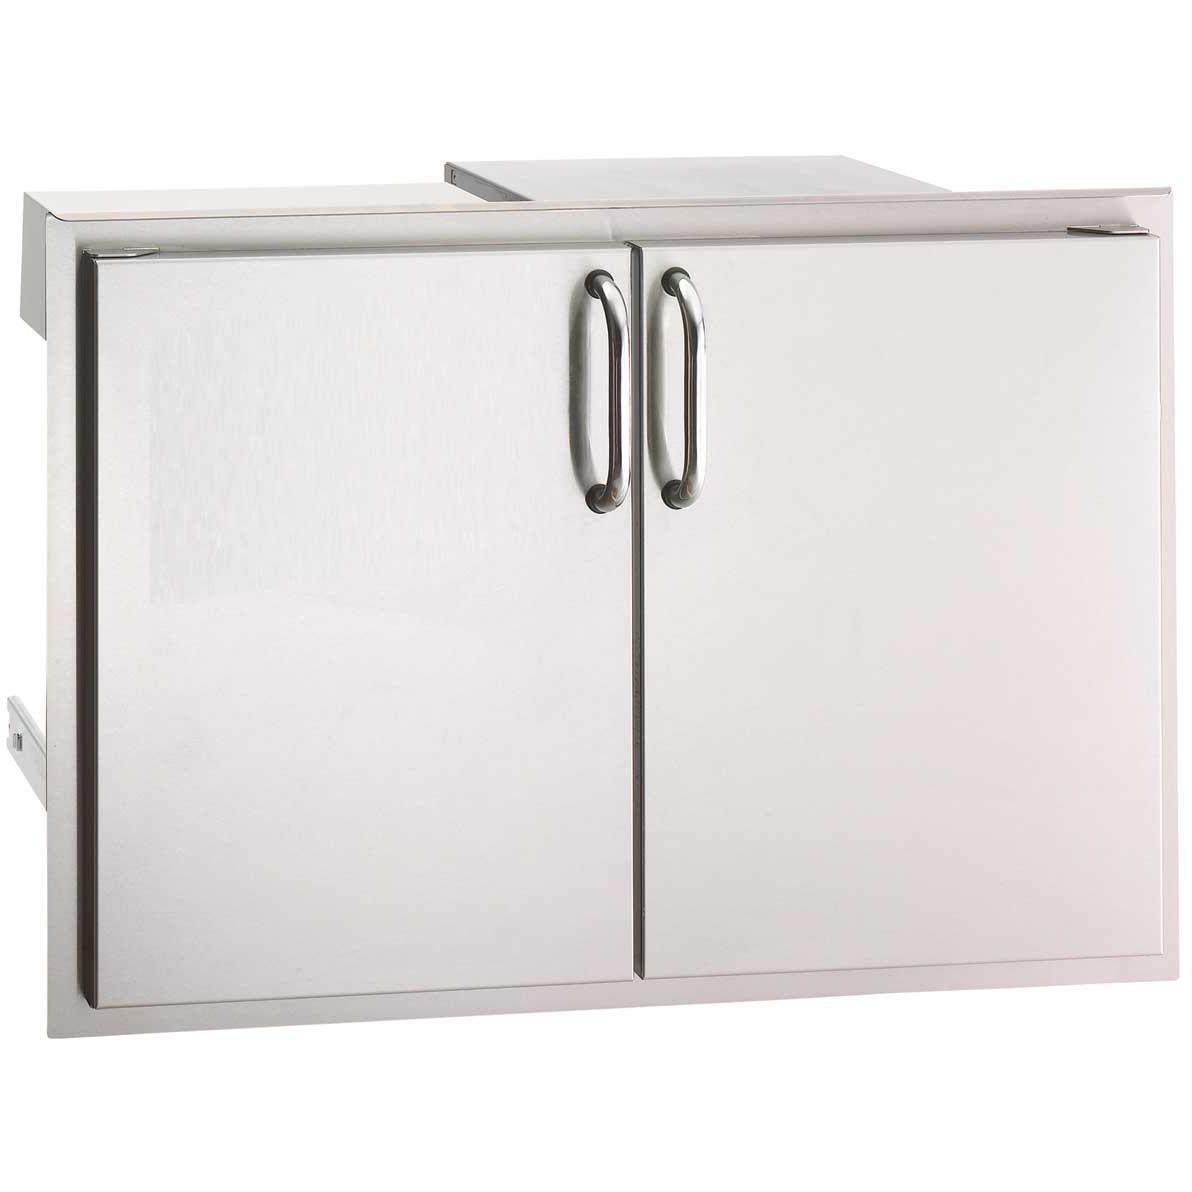 Fire Magic Aurora 30 Inch Double Access Door With Drawers And Trash Bin Storage at Sears.com